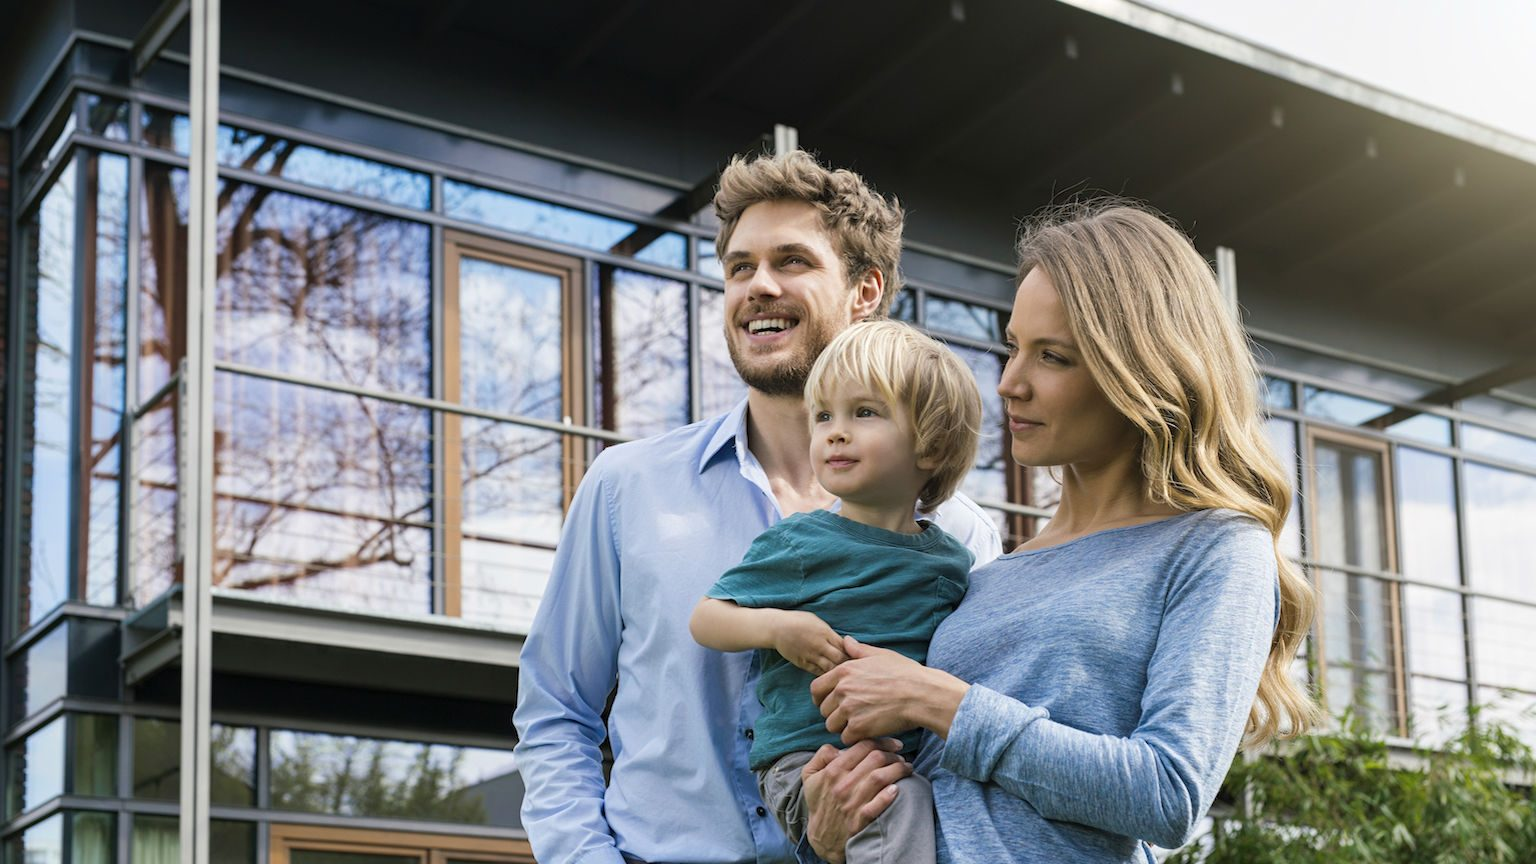 Happy couple with son in front of their home